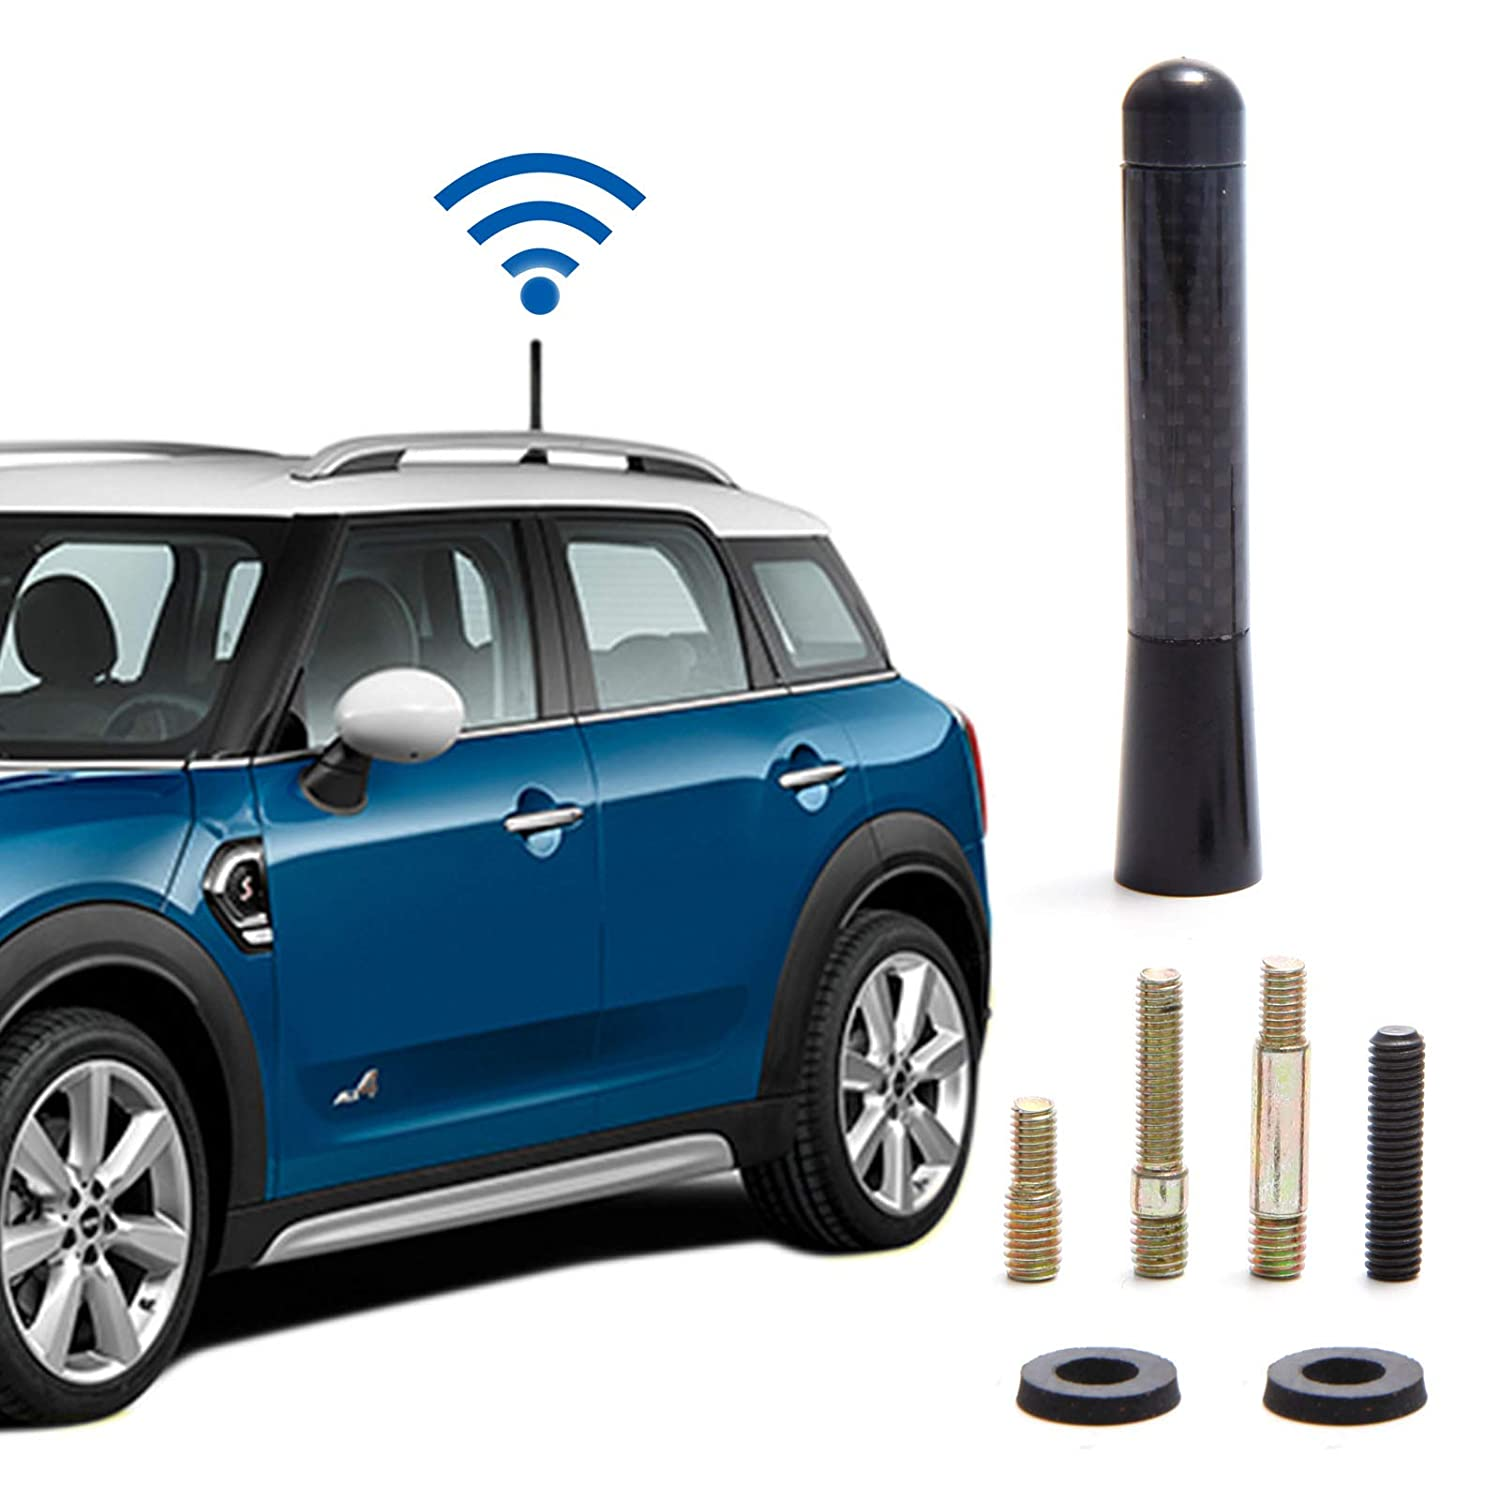 SurePromise Universal Antenna Car Roof Radio Signal Aerial Carbon Fibre 8cm Short Rod Styling FM AM Amplified Booster